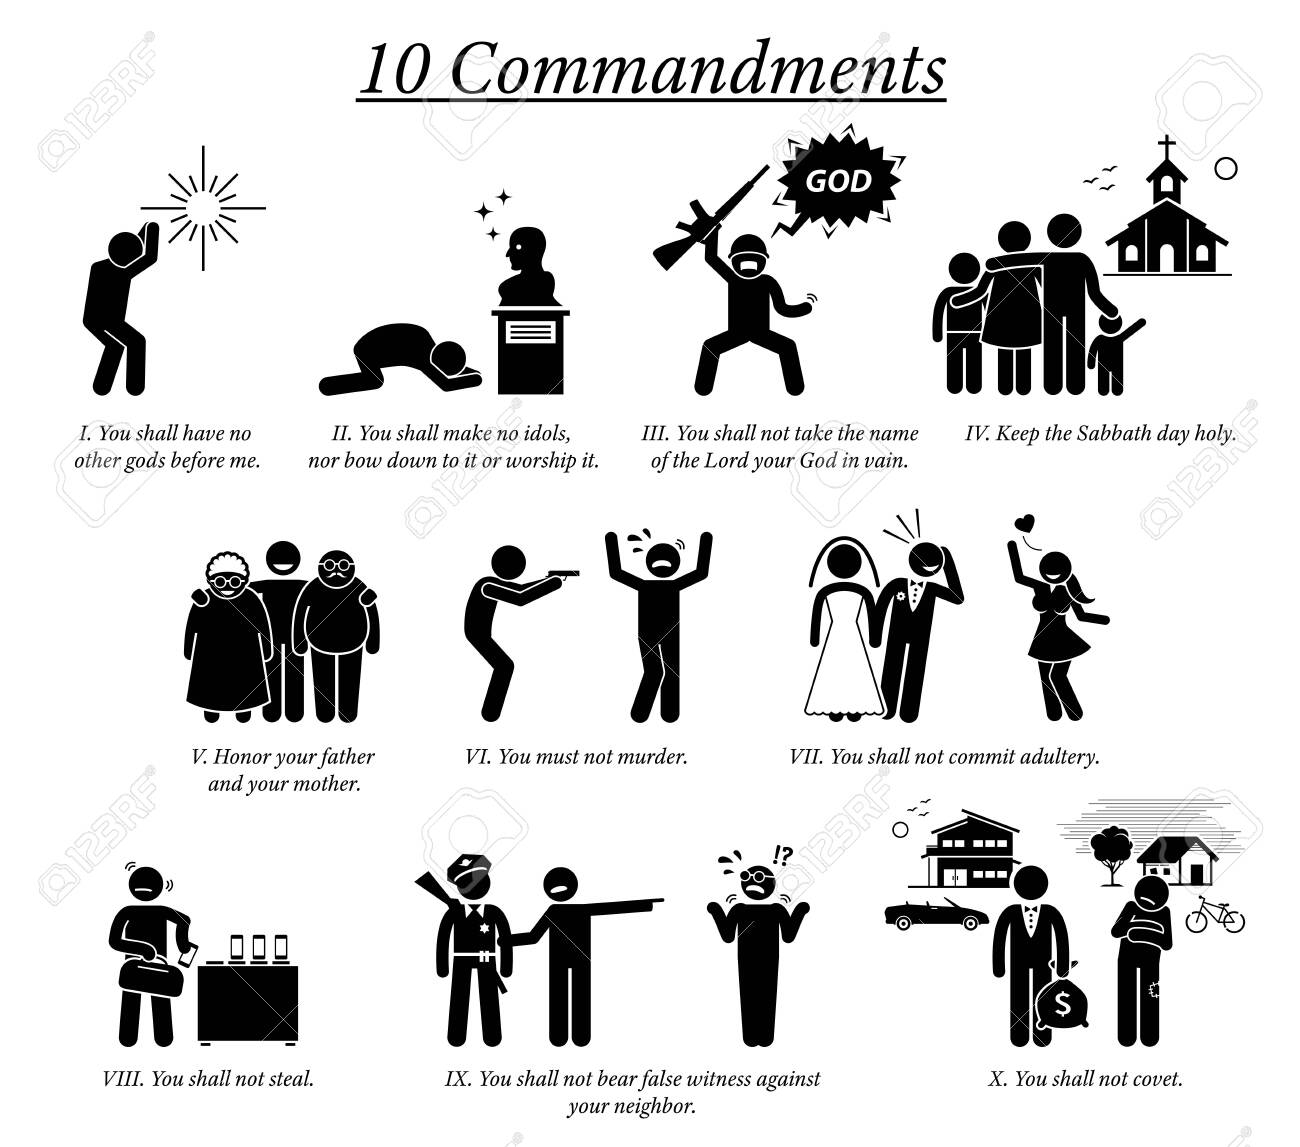 The 10 Commandment icons and pictogram. Illustration depict Ten Commandments teaching, beliefs, and moral value by Christian God religion. - 131630288